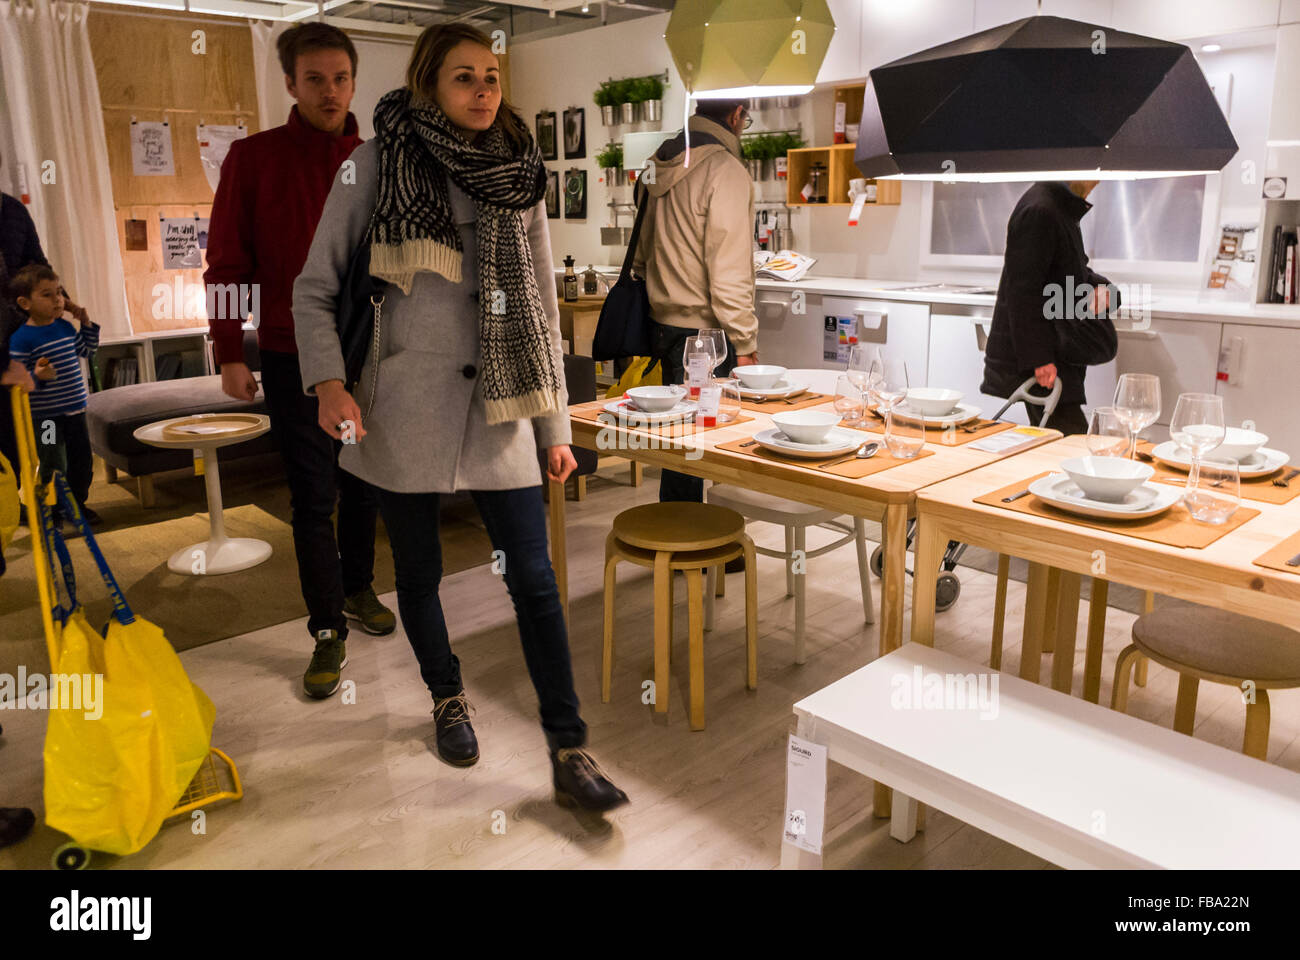 Magasin Ikea Cuisine Magasin Ikea Cuisine Cool Awesome Cuisine Magasin Ikea Cuisine